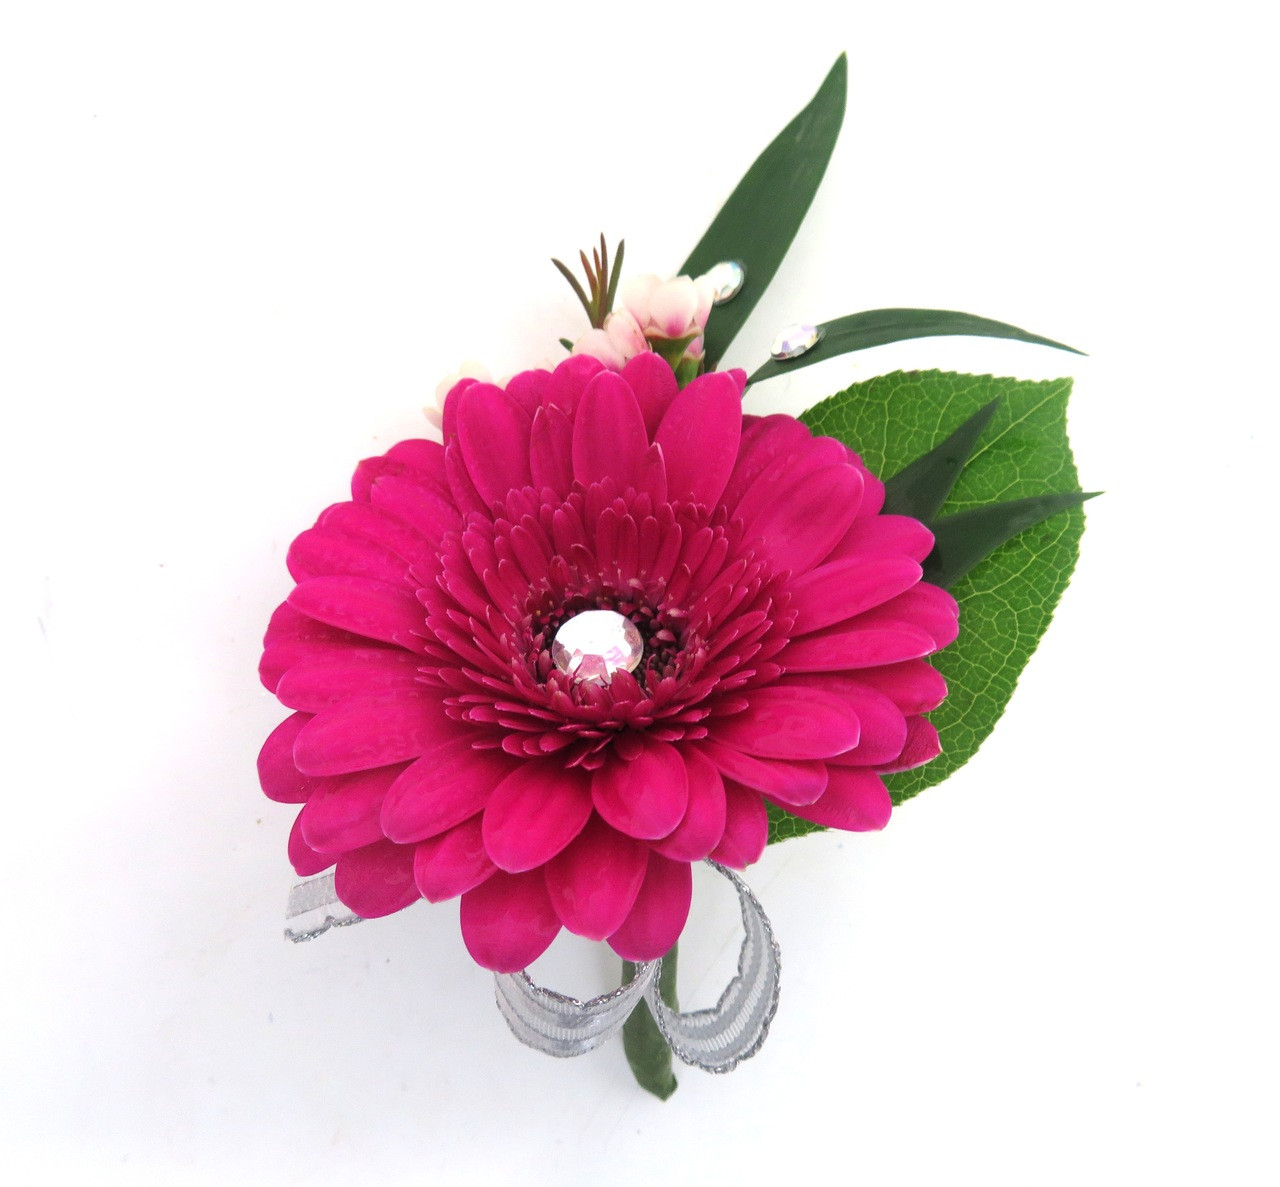 Gerbera Daisy Prom Boutonniere   Georgetown Flowers   Gifts Gerbera Daisy Prom Boutonniere